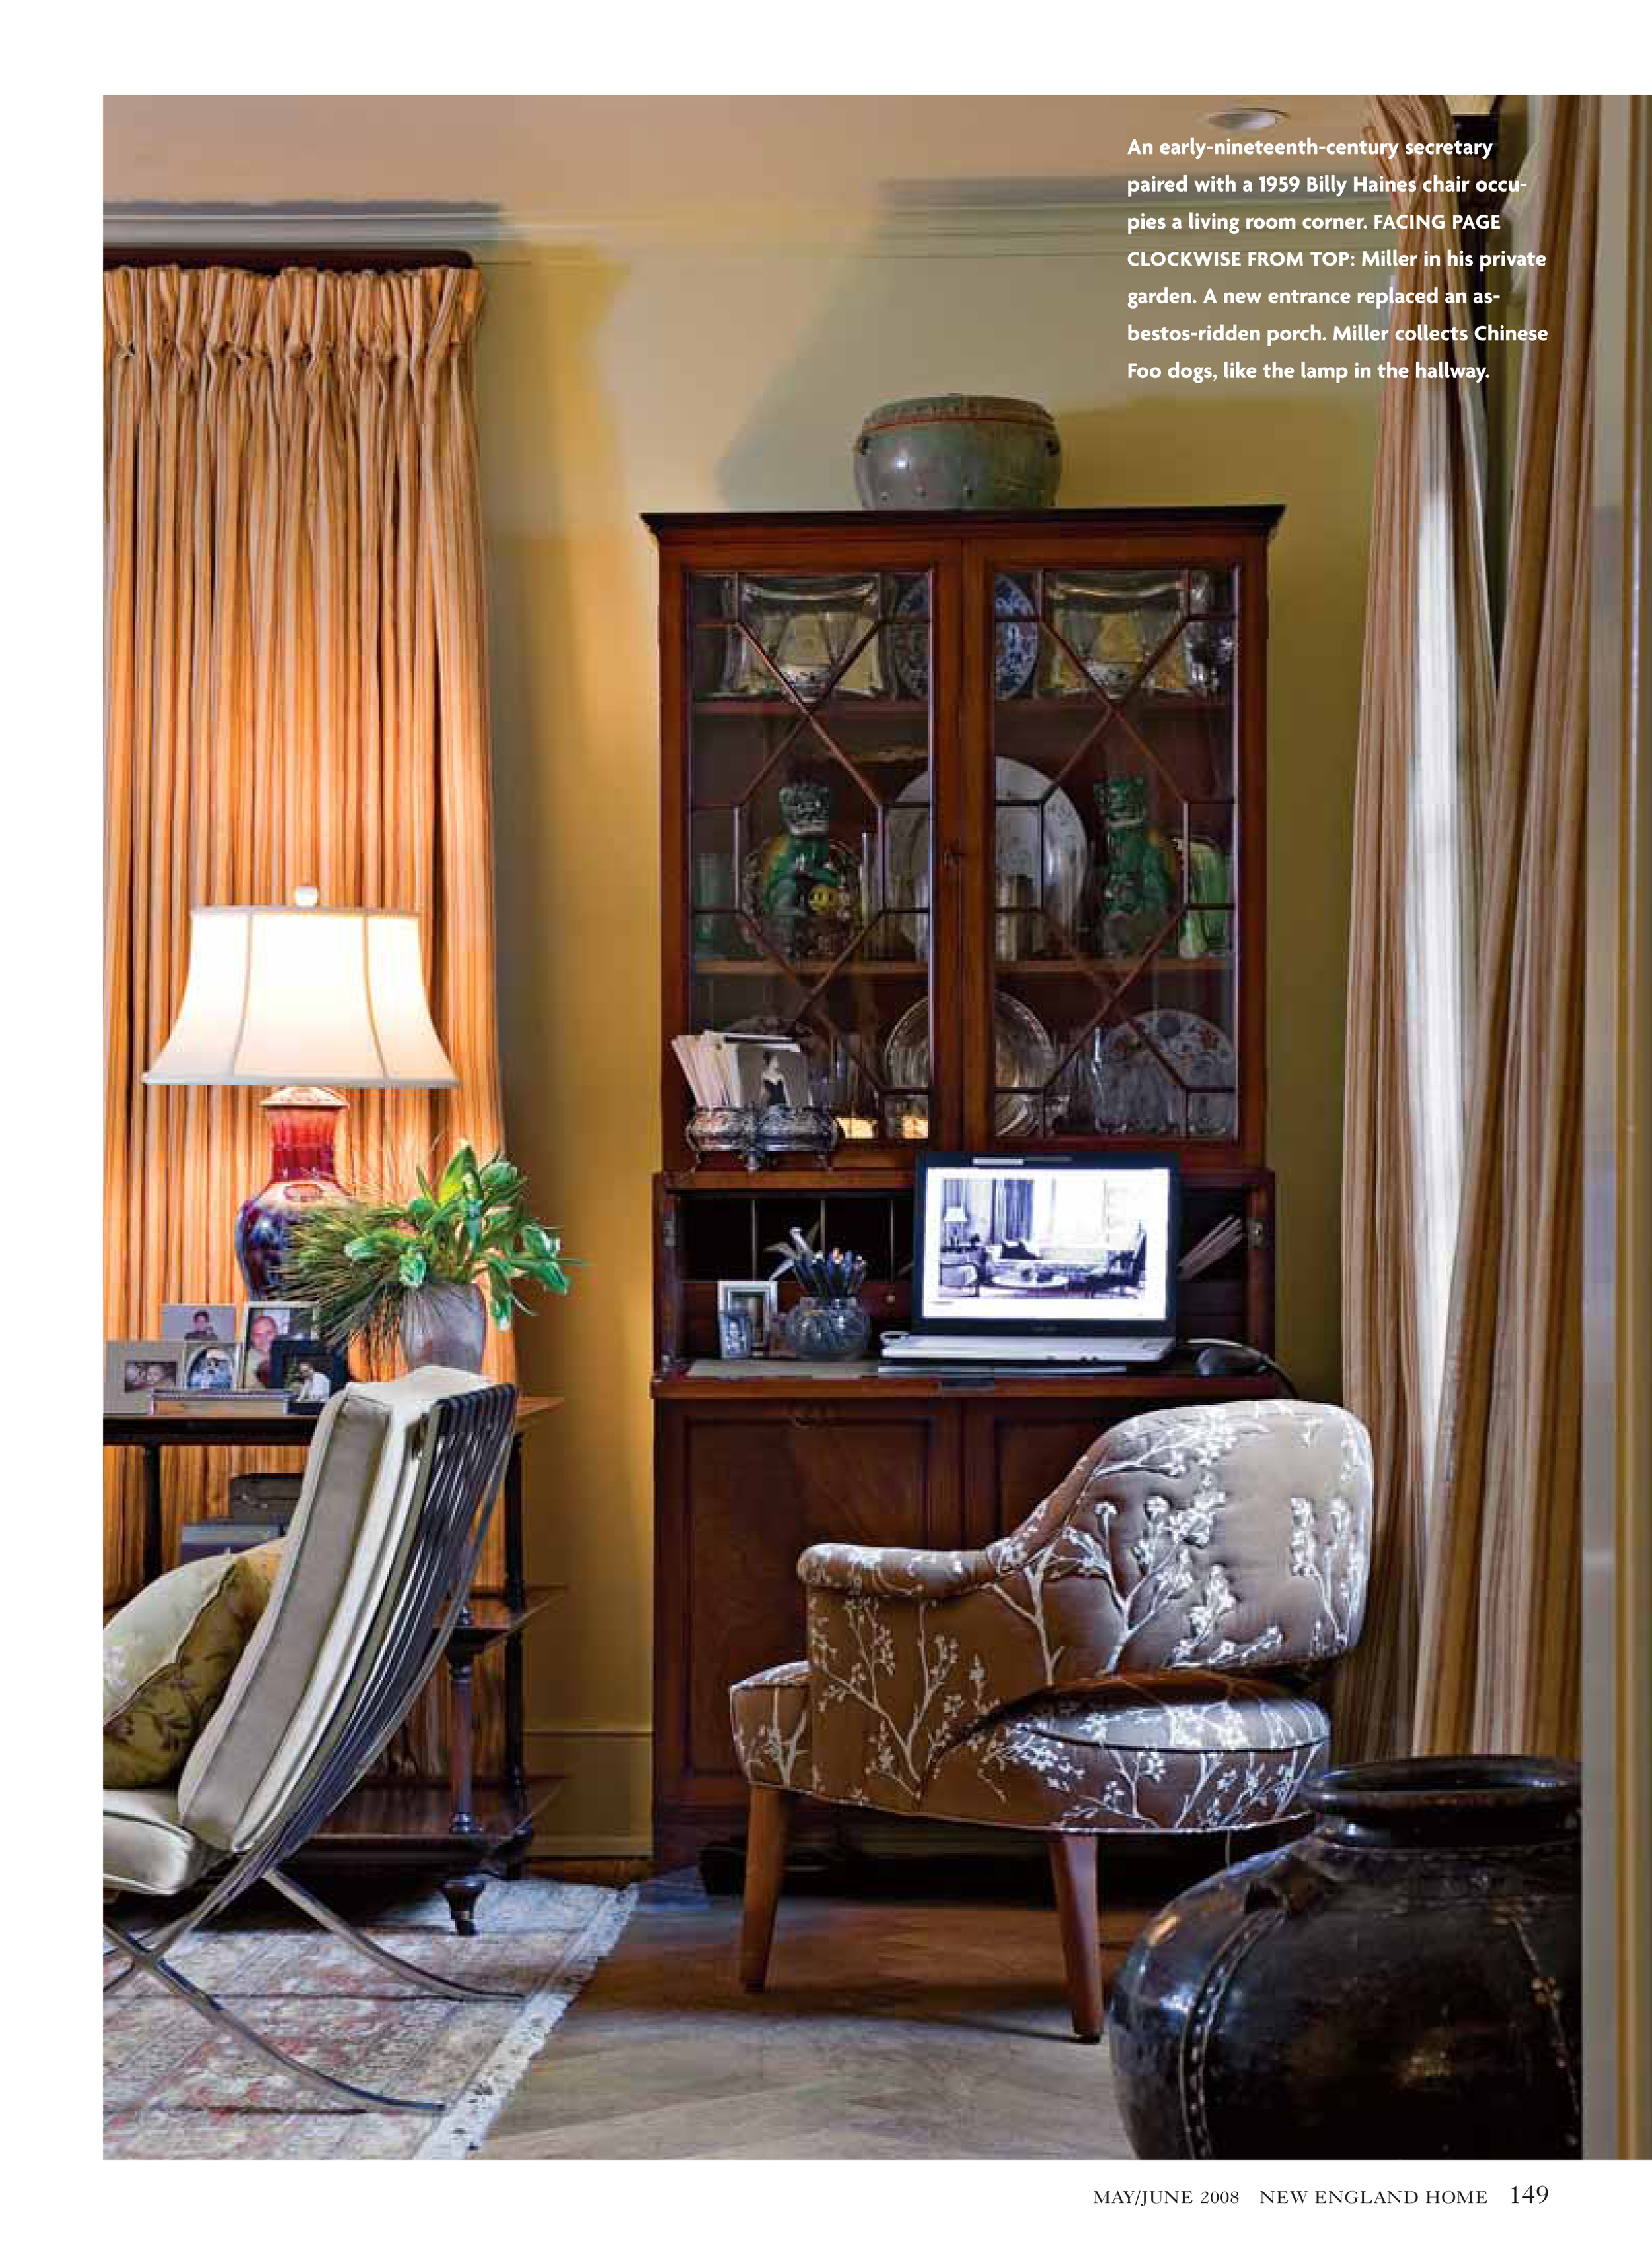 New England Home Mag - 10 Foster - reprint proof 1-5.jpg